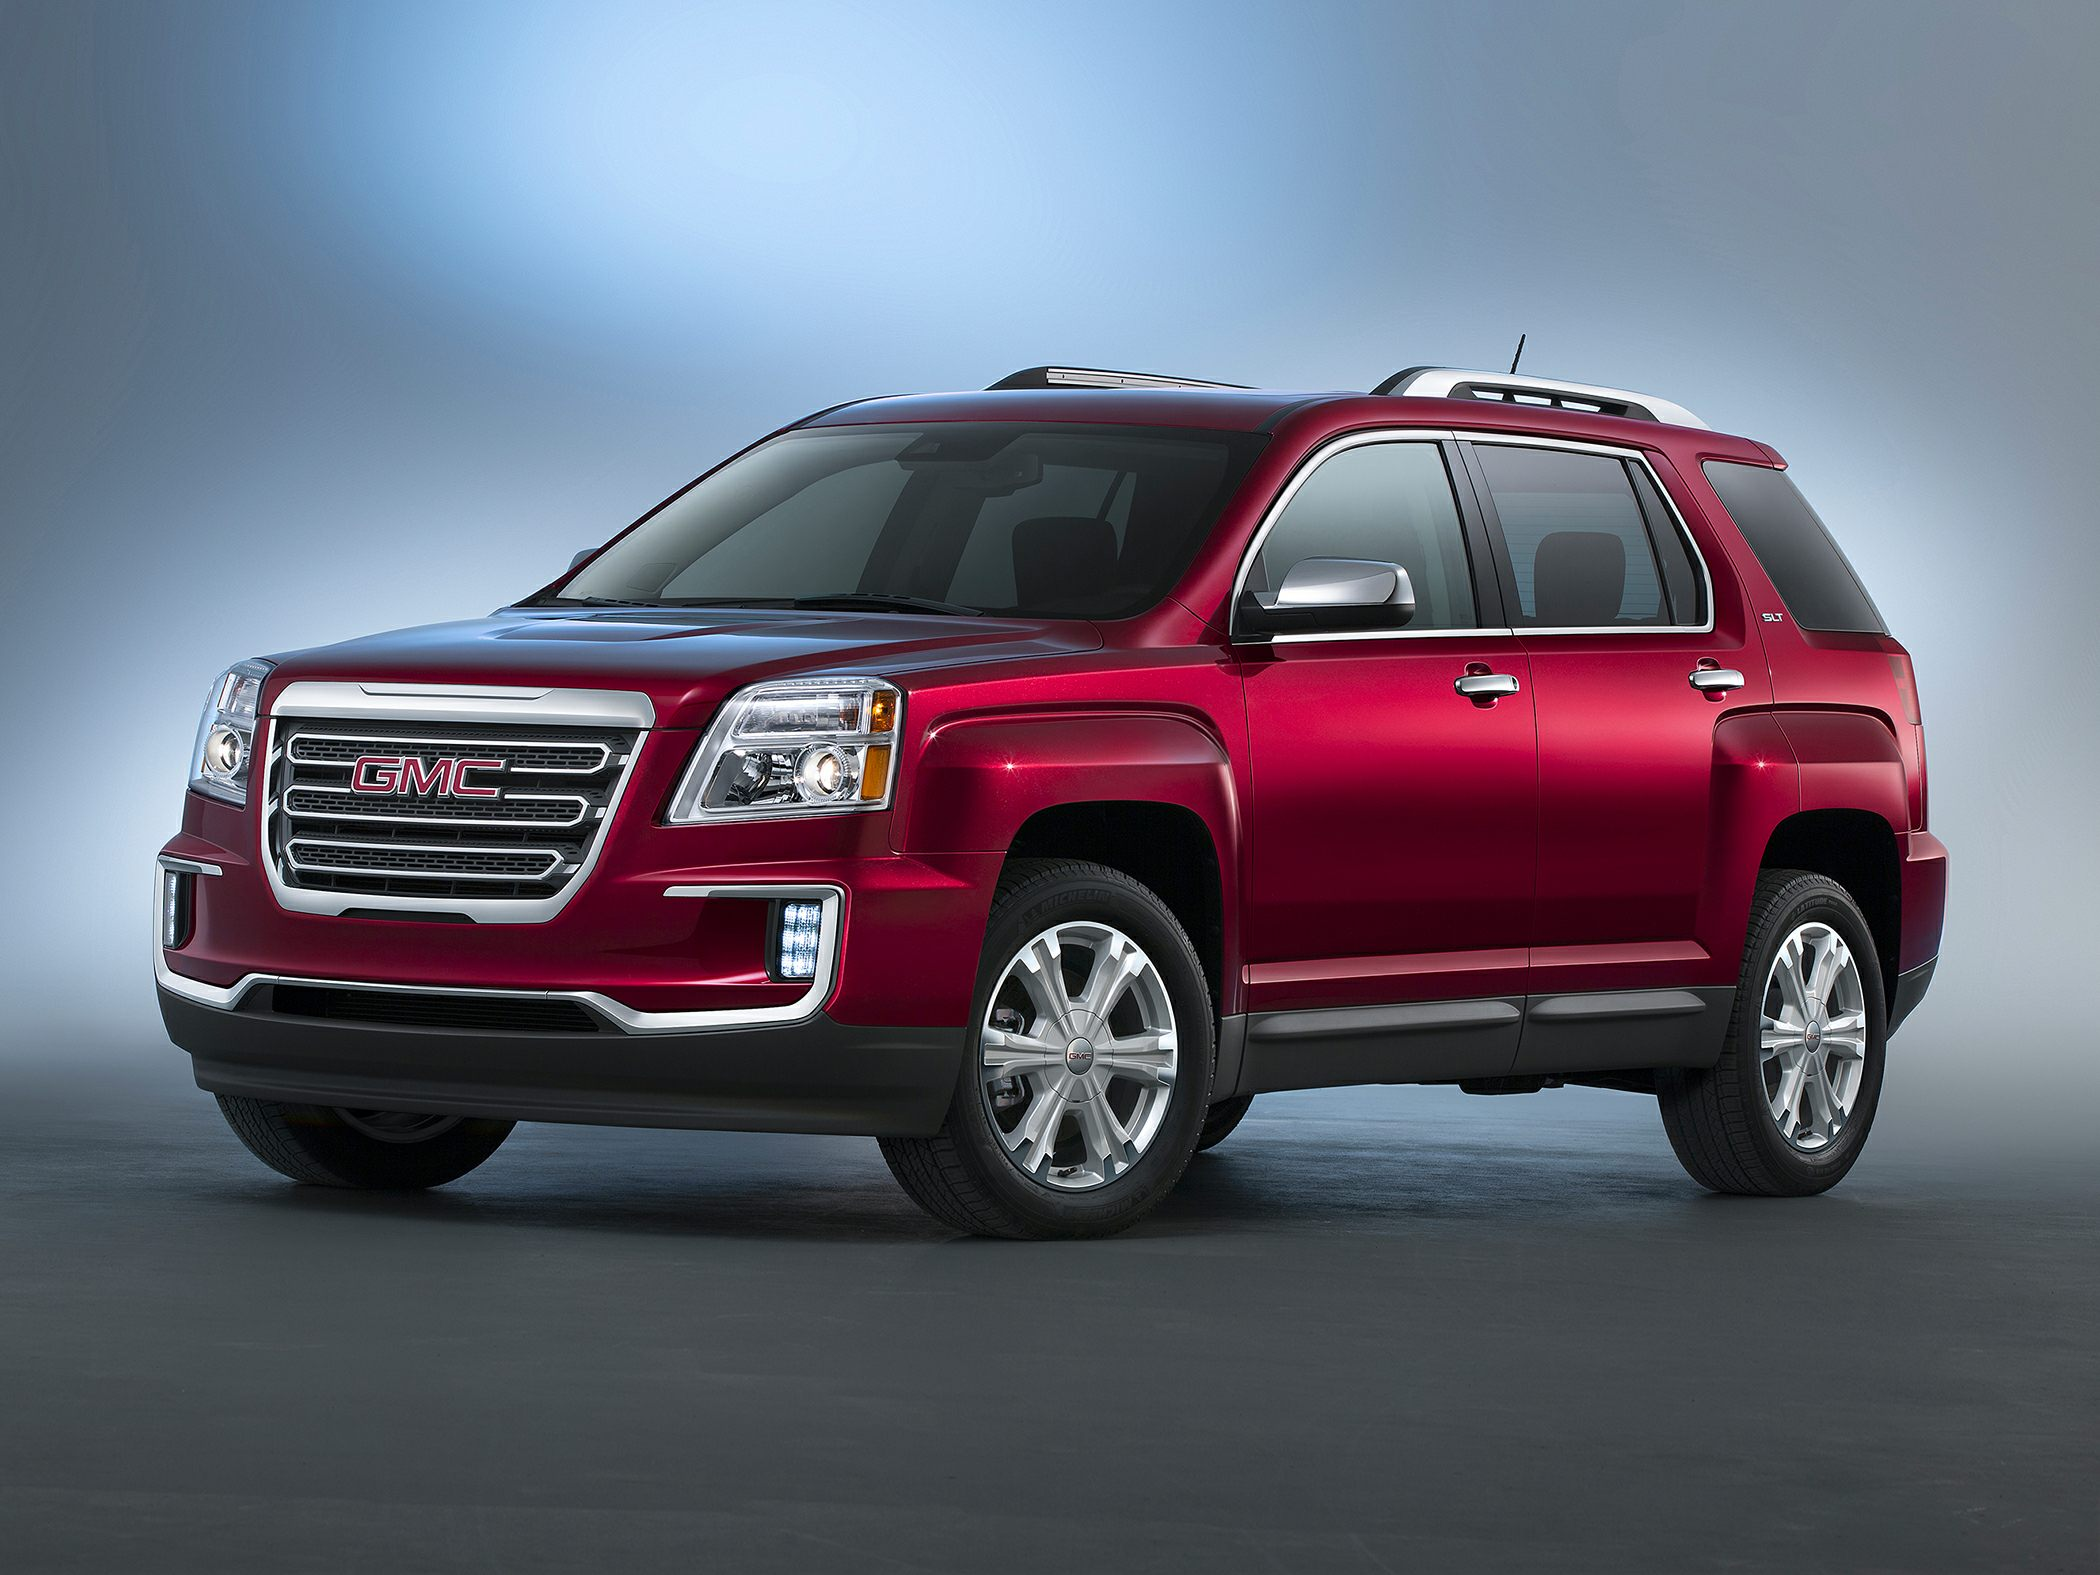 the and terrain new beauty power levels terrian denali models two trim in collide gmc